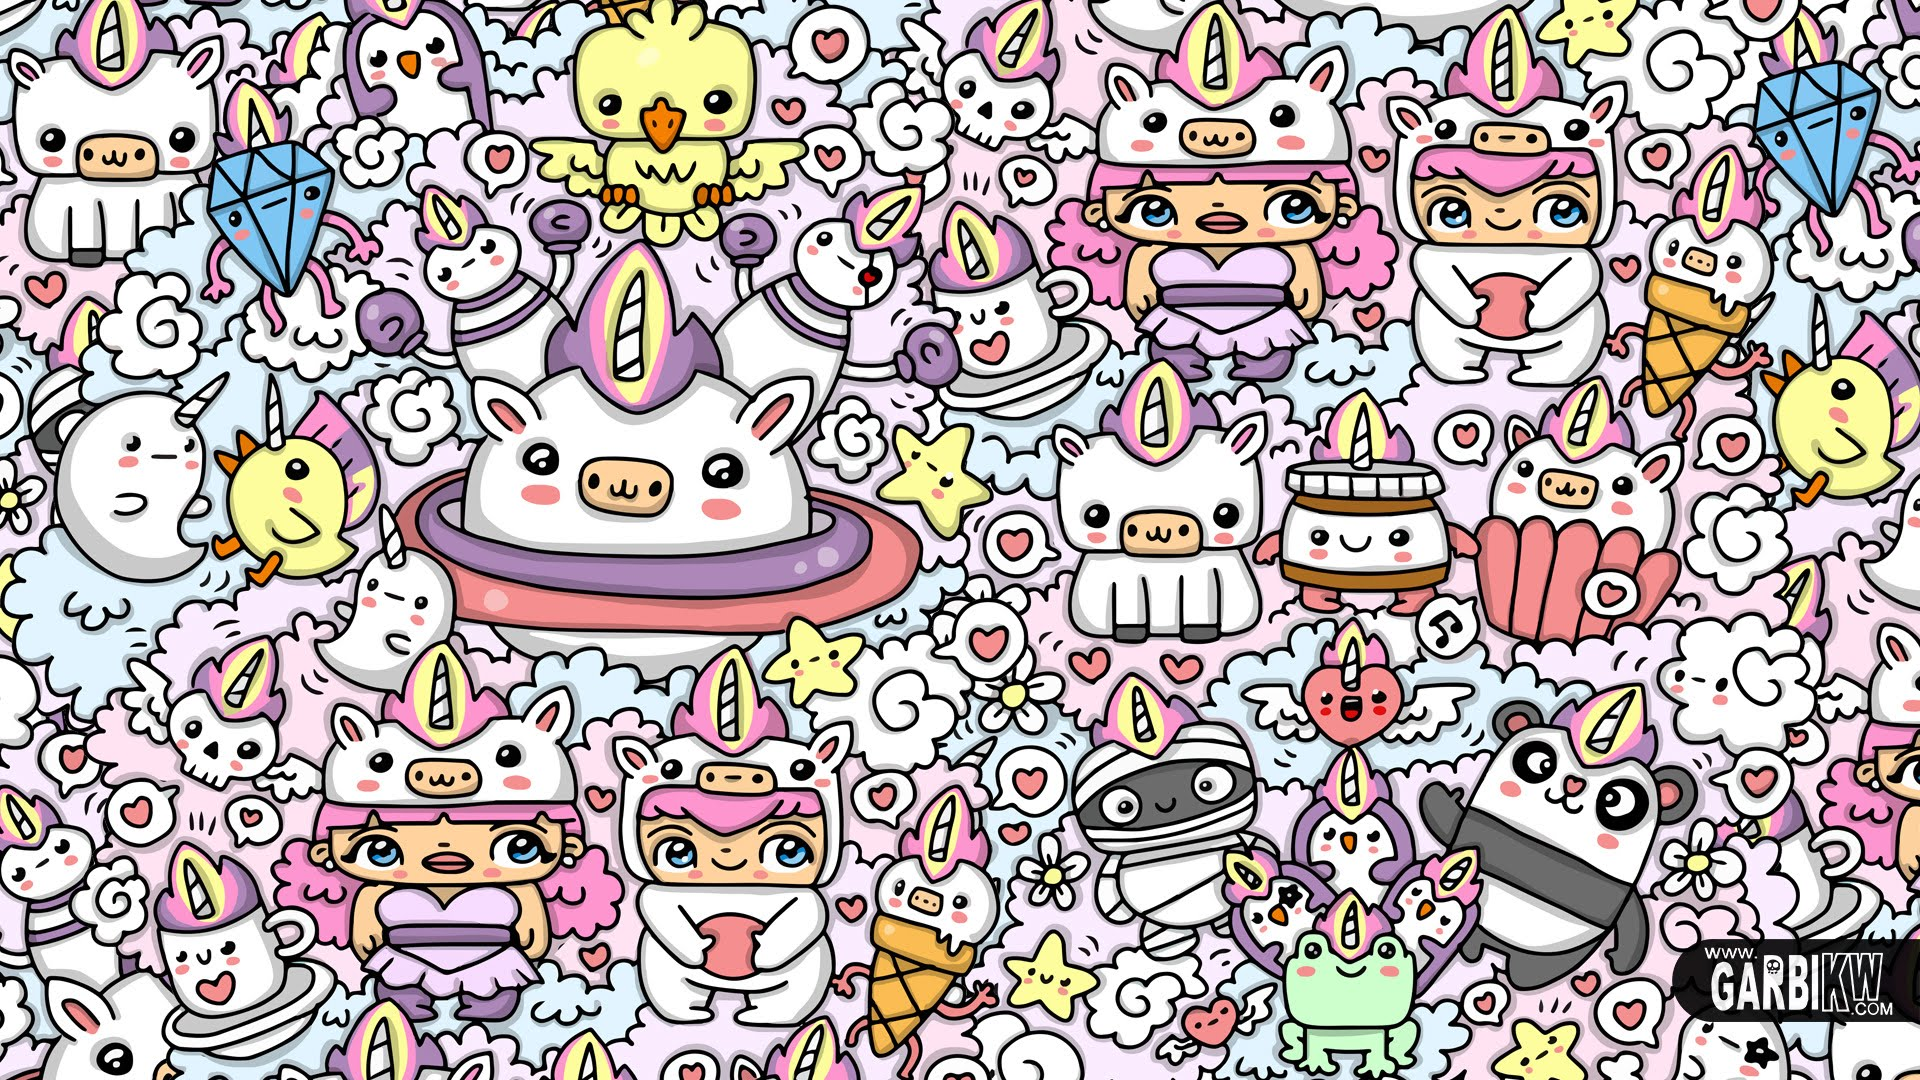 42 423085 kawaii unicorn world kawaii graffiti and cute doodles